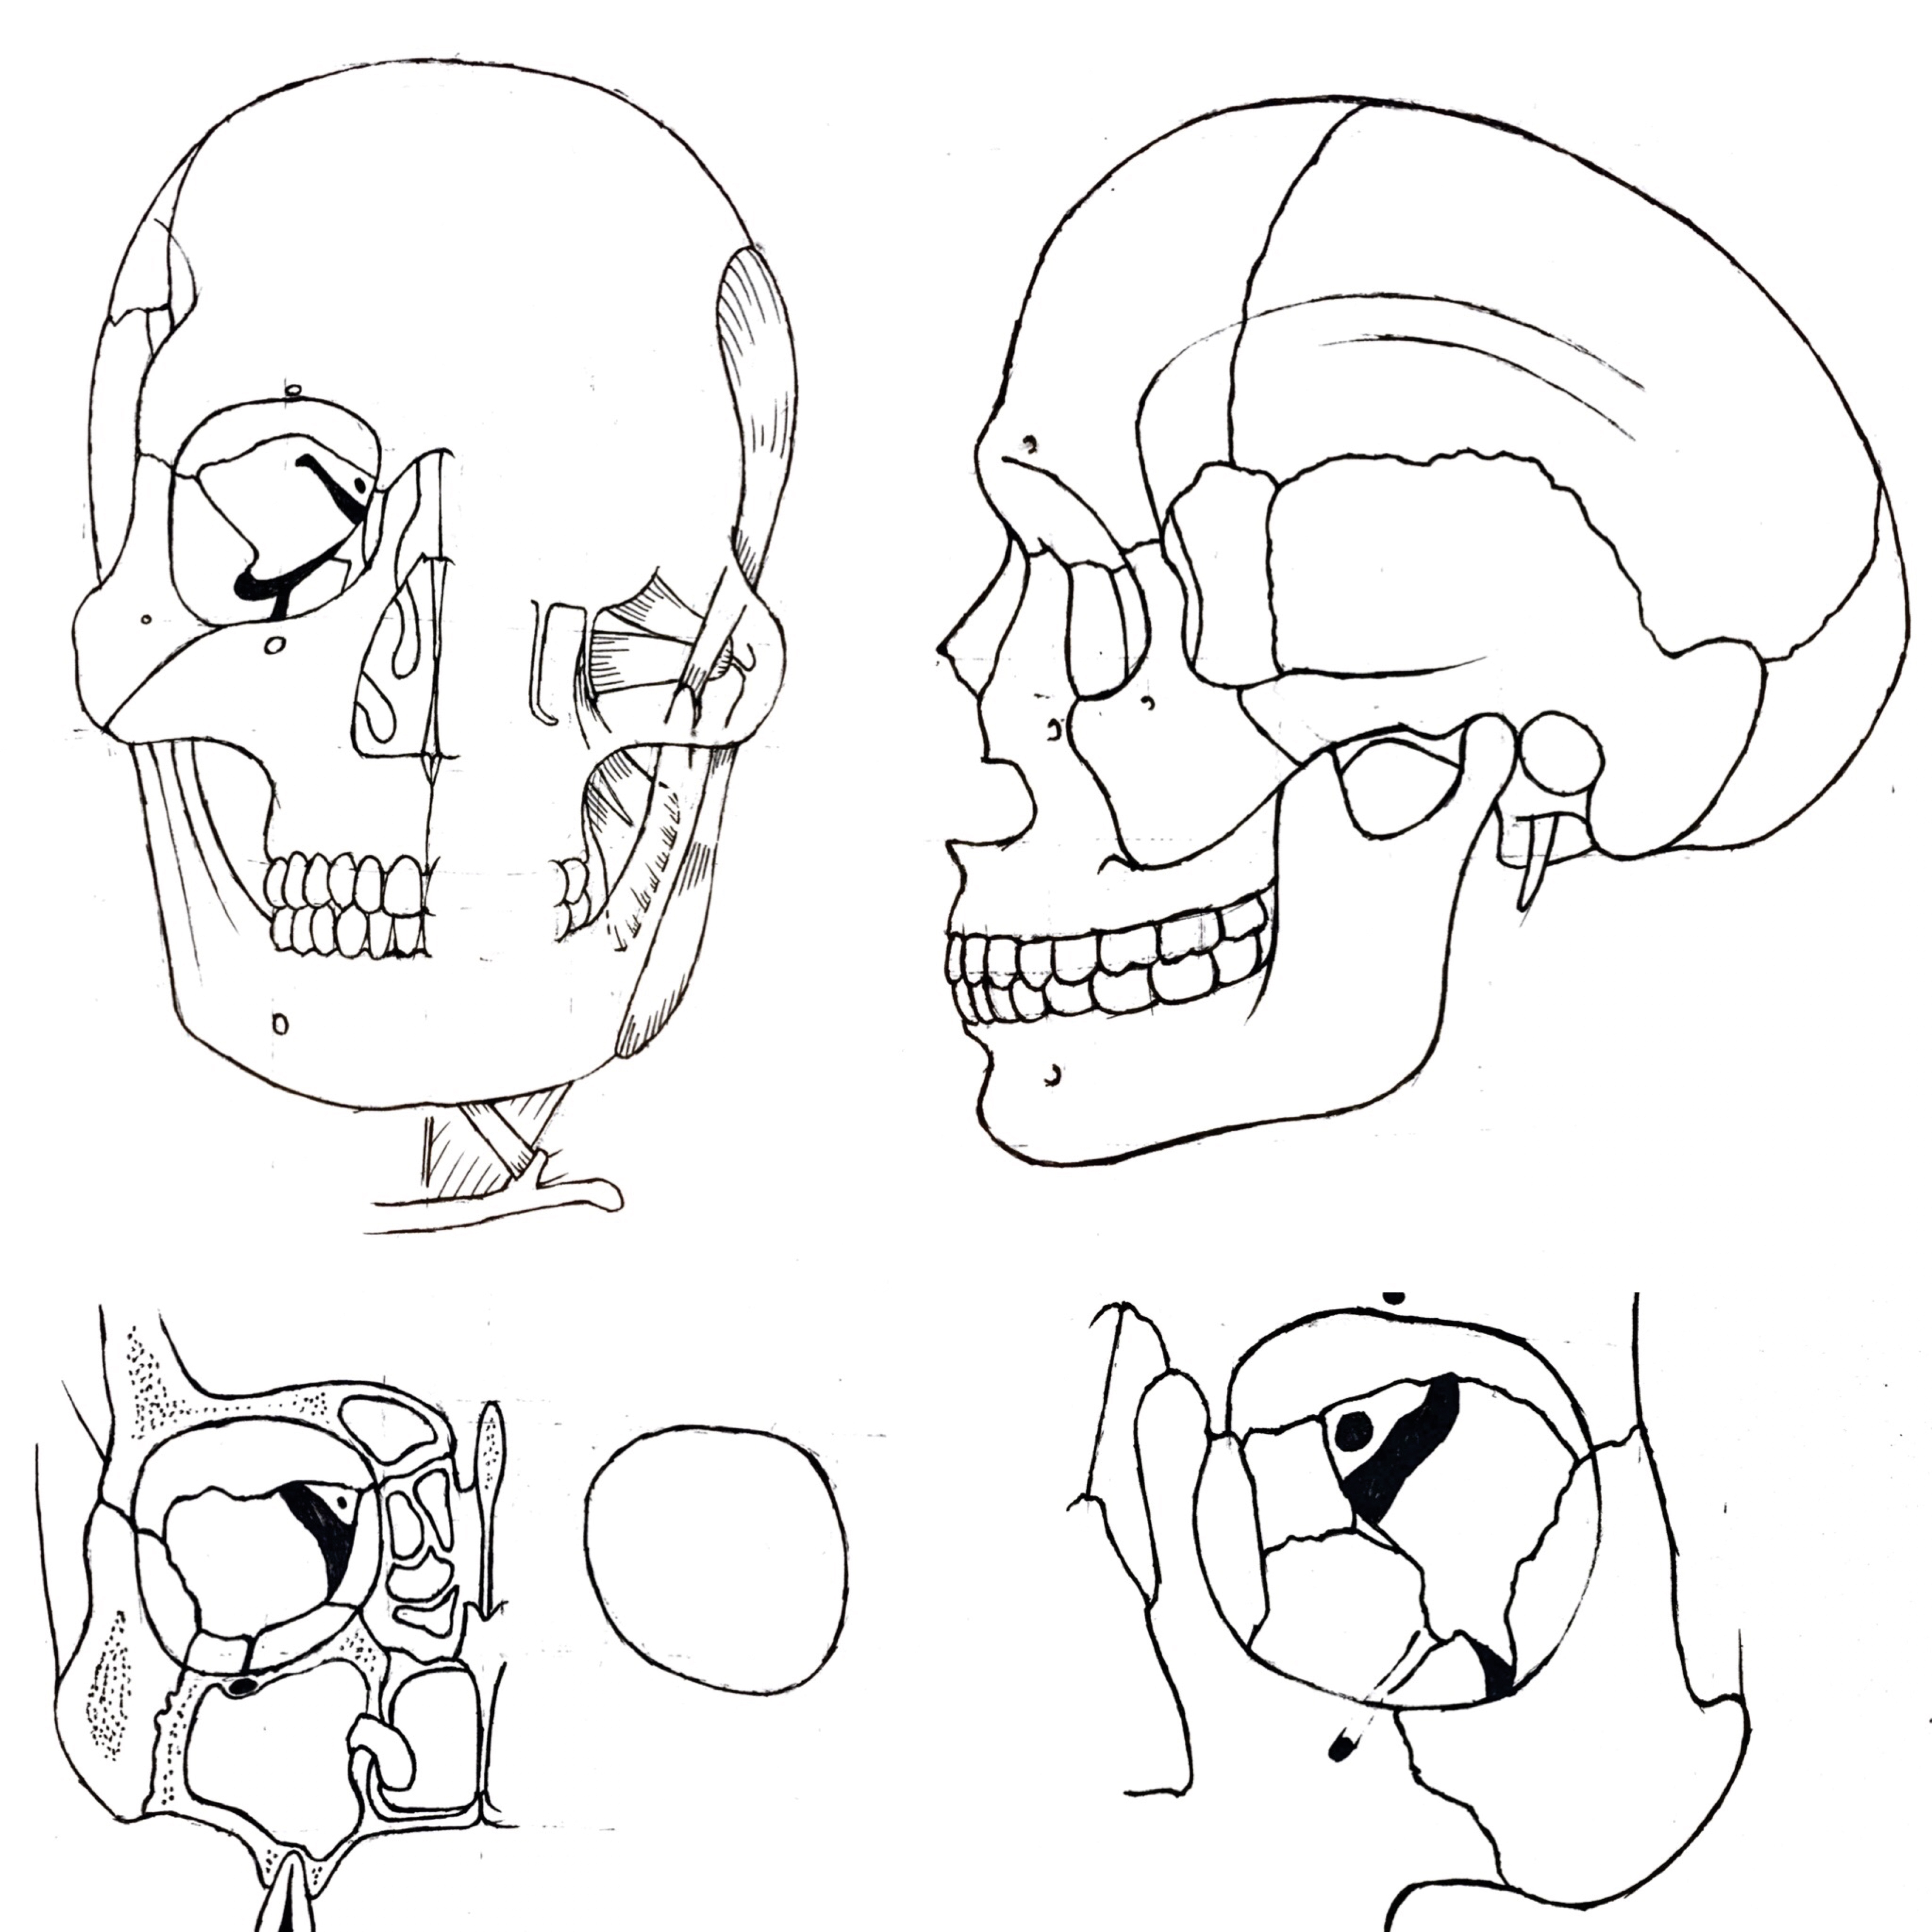 Teaching Students Head And Neck Anatomy Through The Art Of Drawing